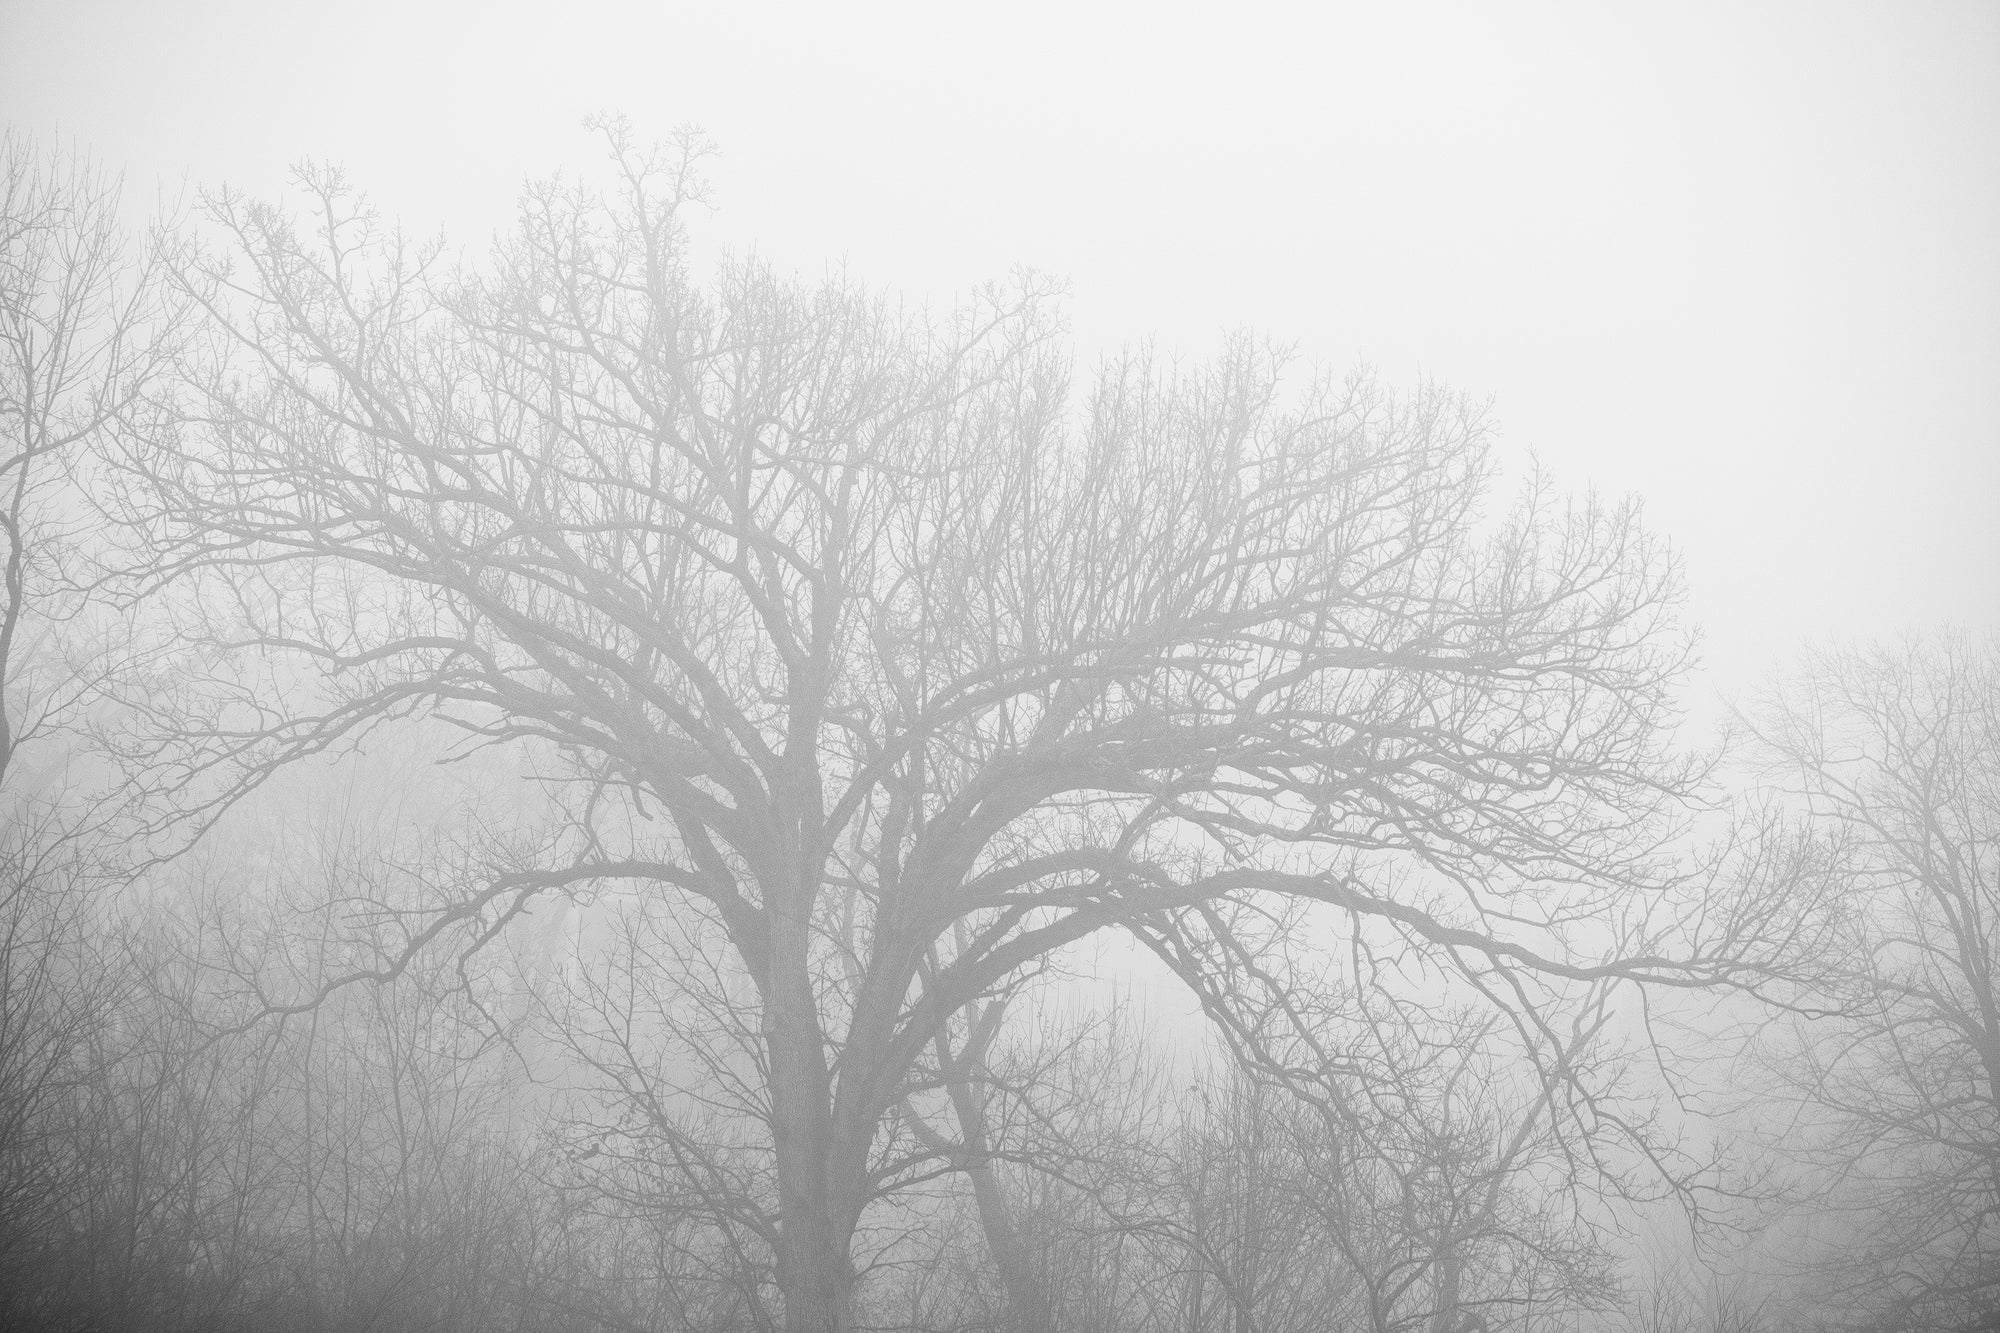 Foggy Morning Landscape - Black and White Landscape Photograph by Keith Dotson. Buy a print.